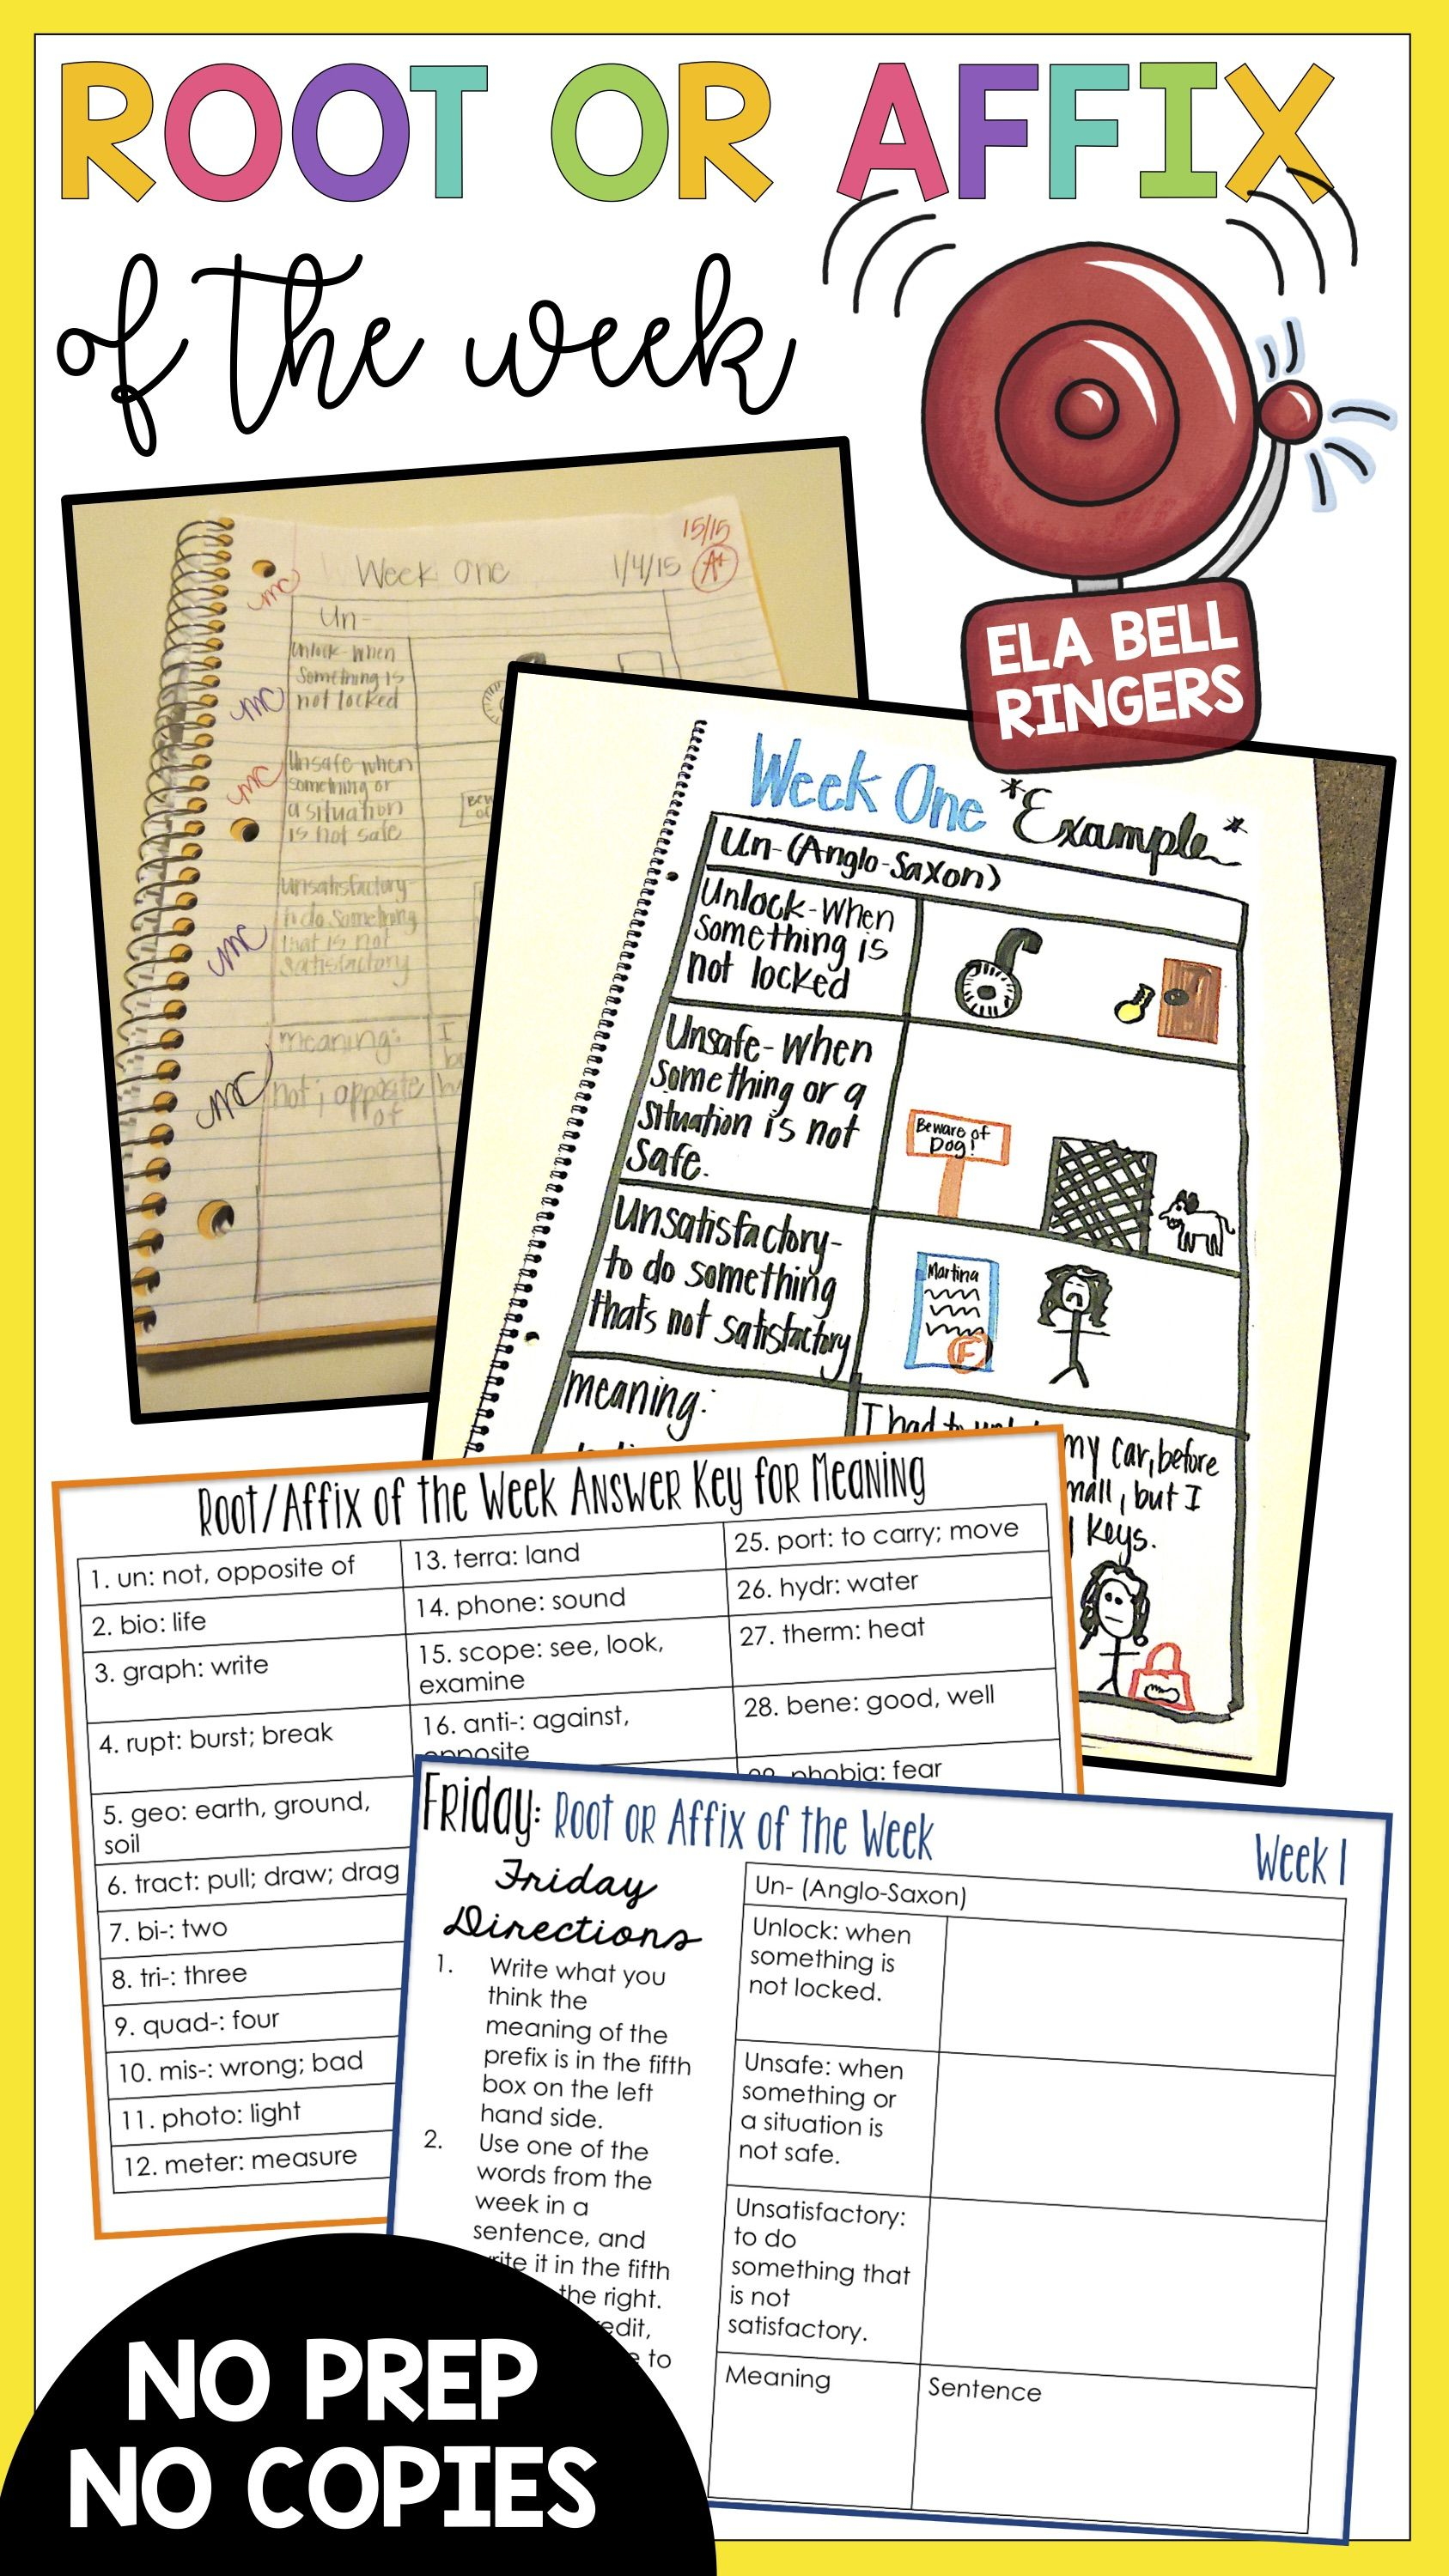 Root Words And Affixes Ela Bell Ringers For Middle School